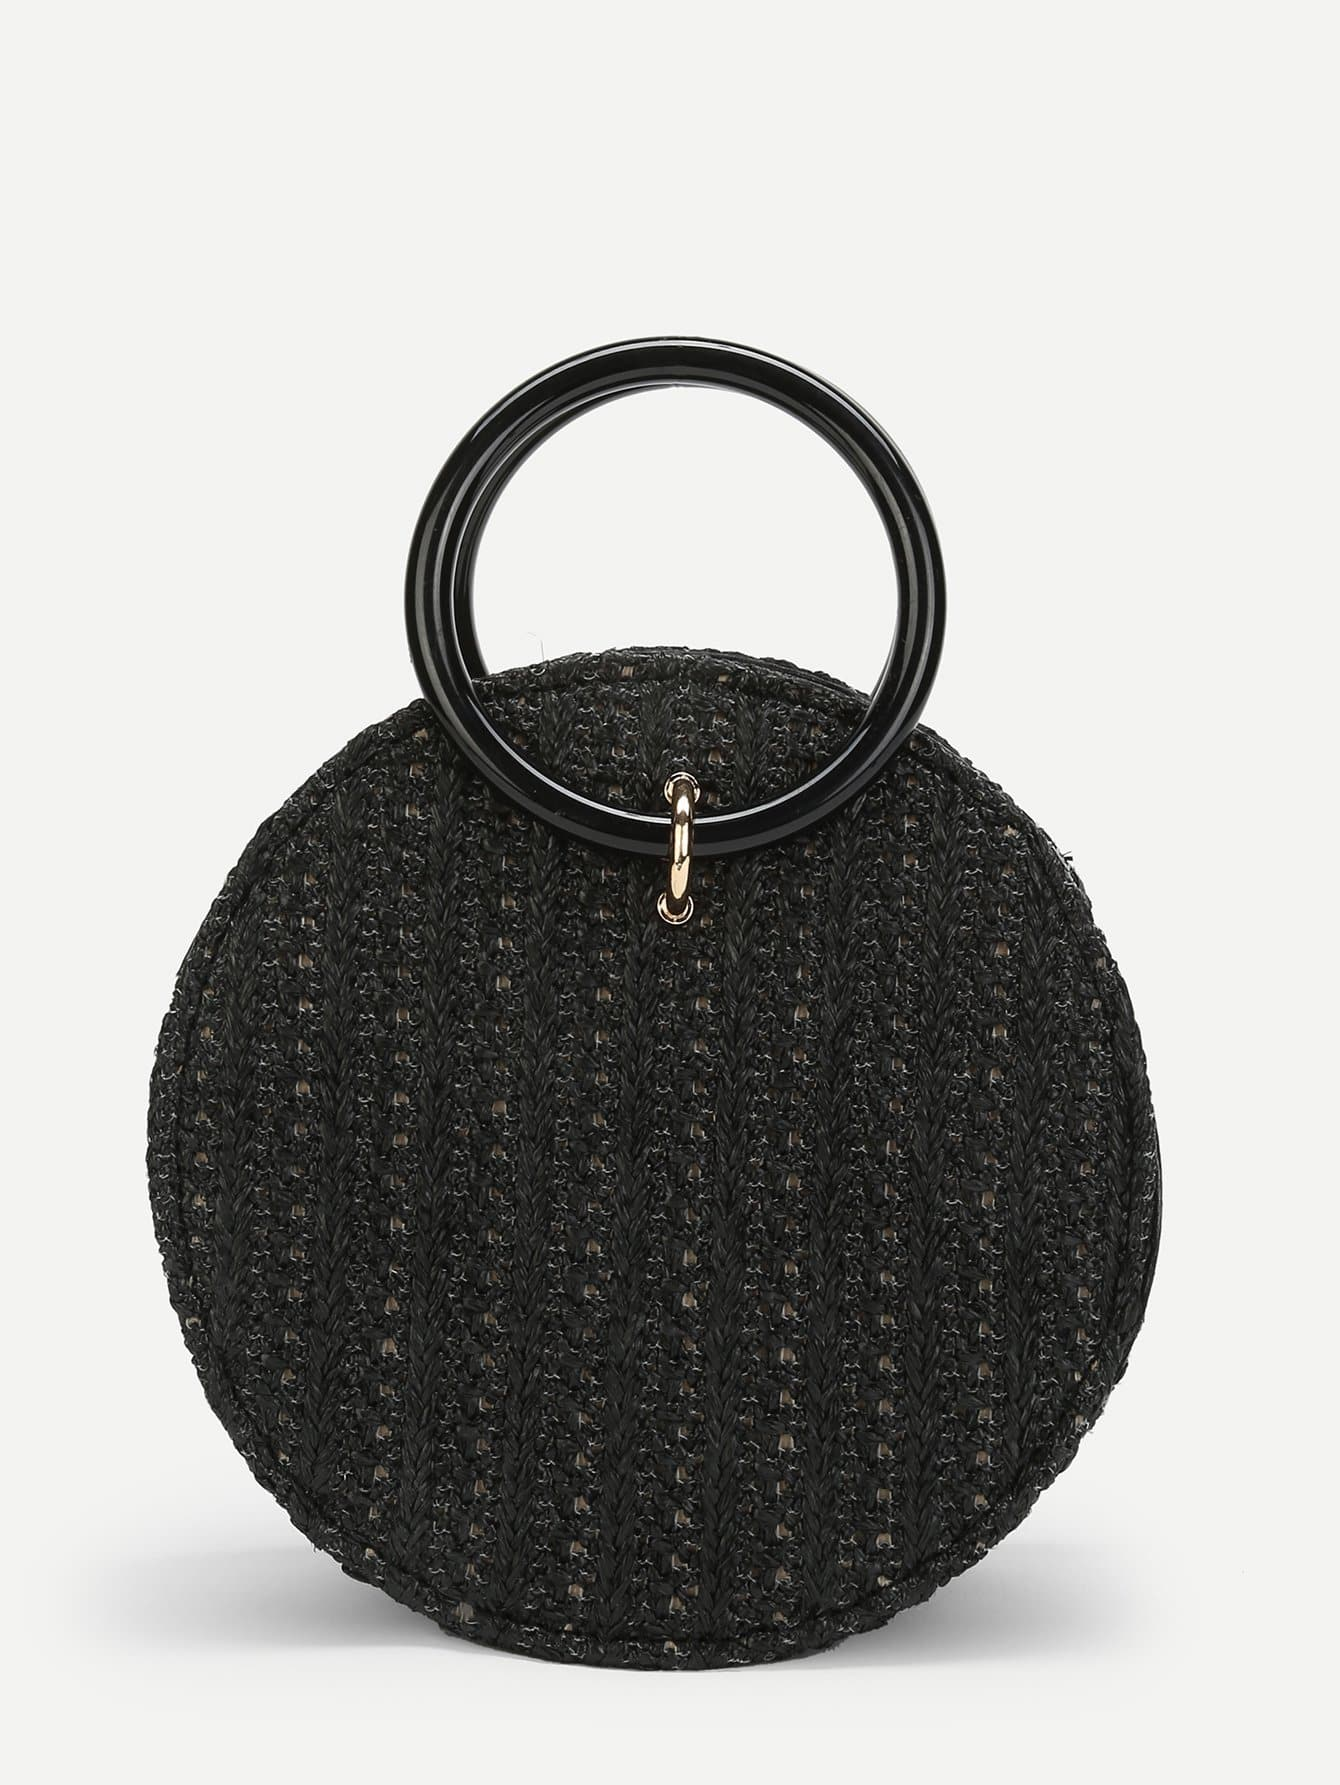 Ring Detail Straw Round Chain Bag palm tree pattern straw chain bag